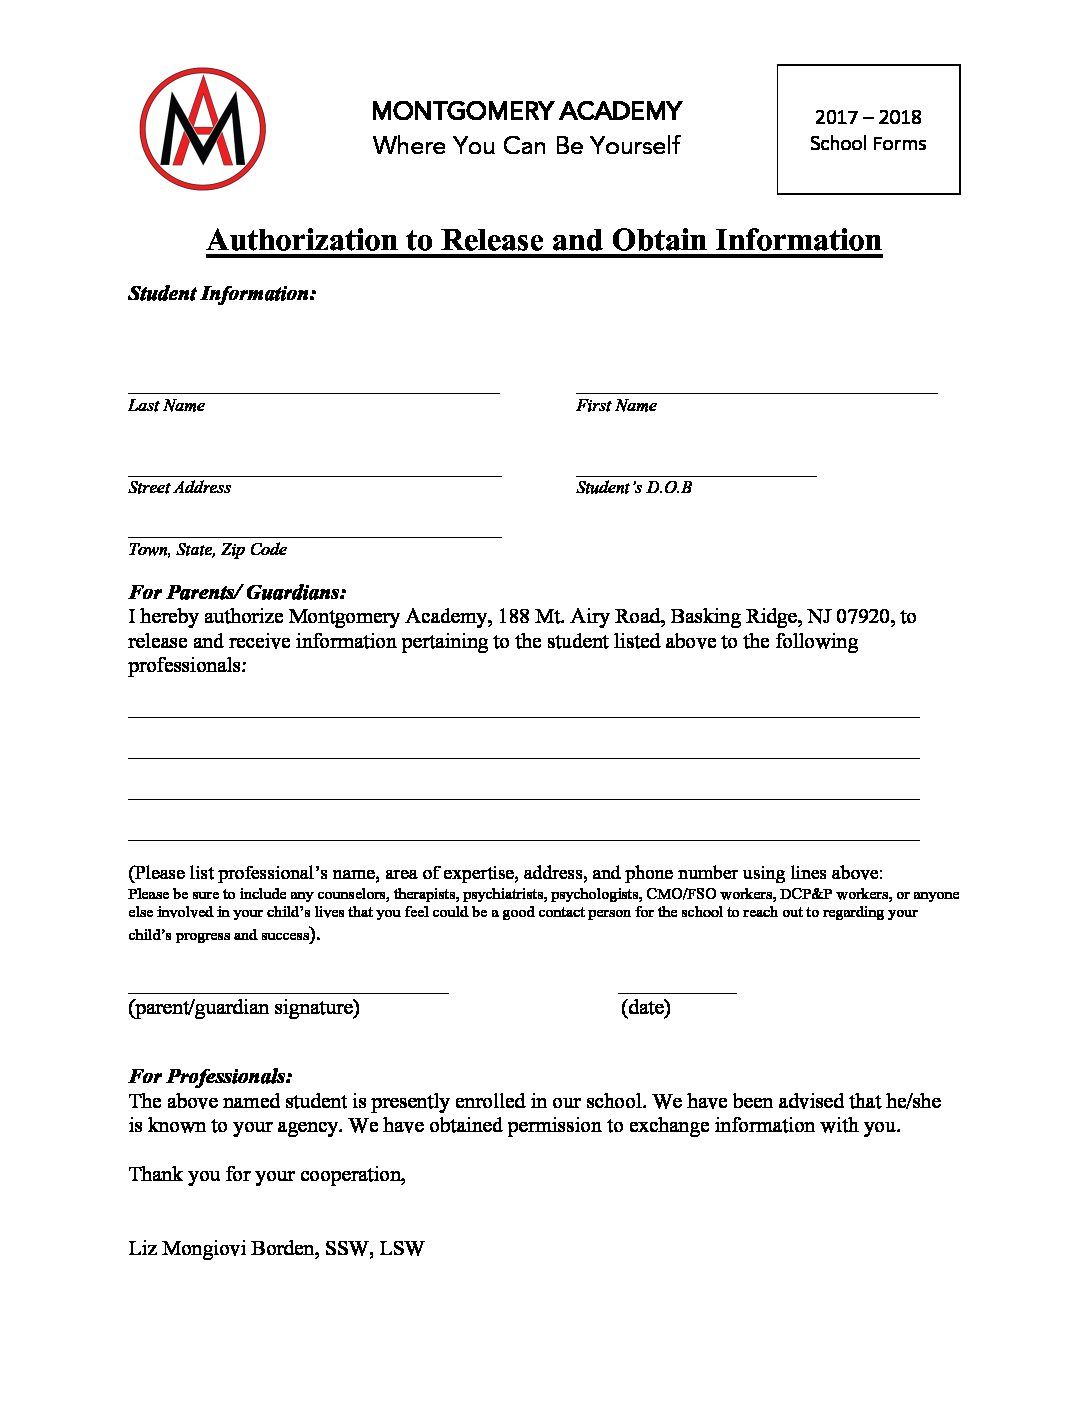 Authorization To Release And Obtain Information Http Www